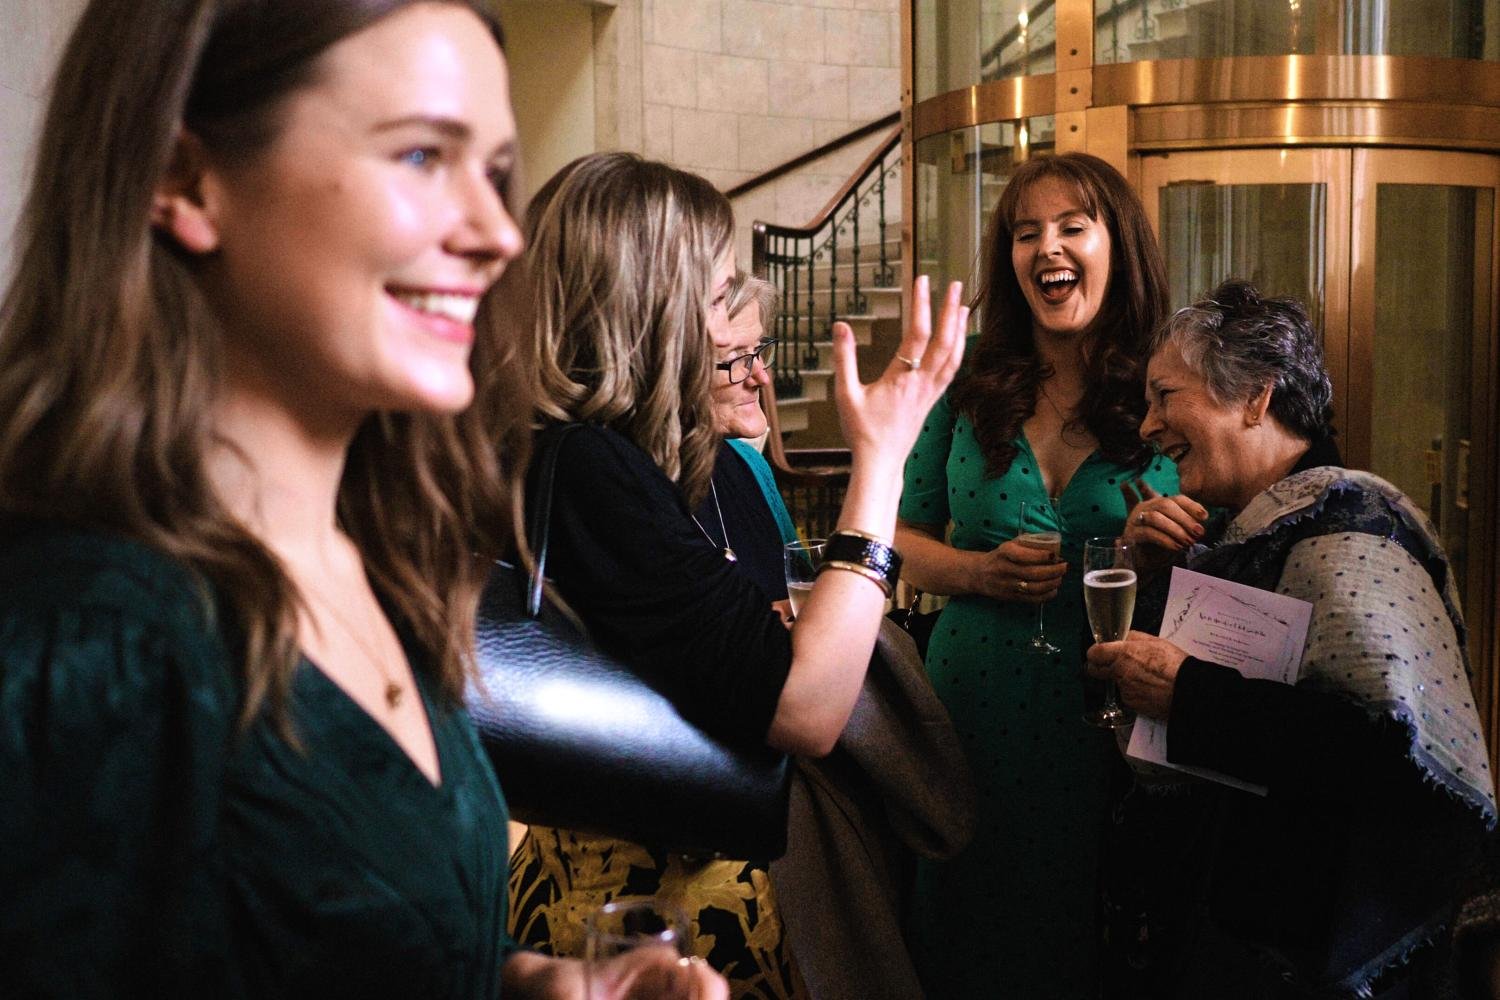 Women laugh at a drinks reception at Dublin City Hall